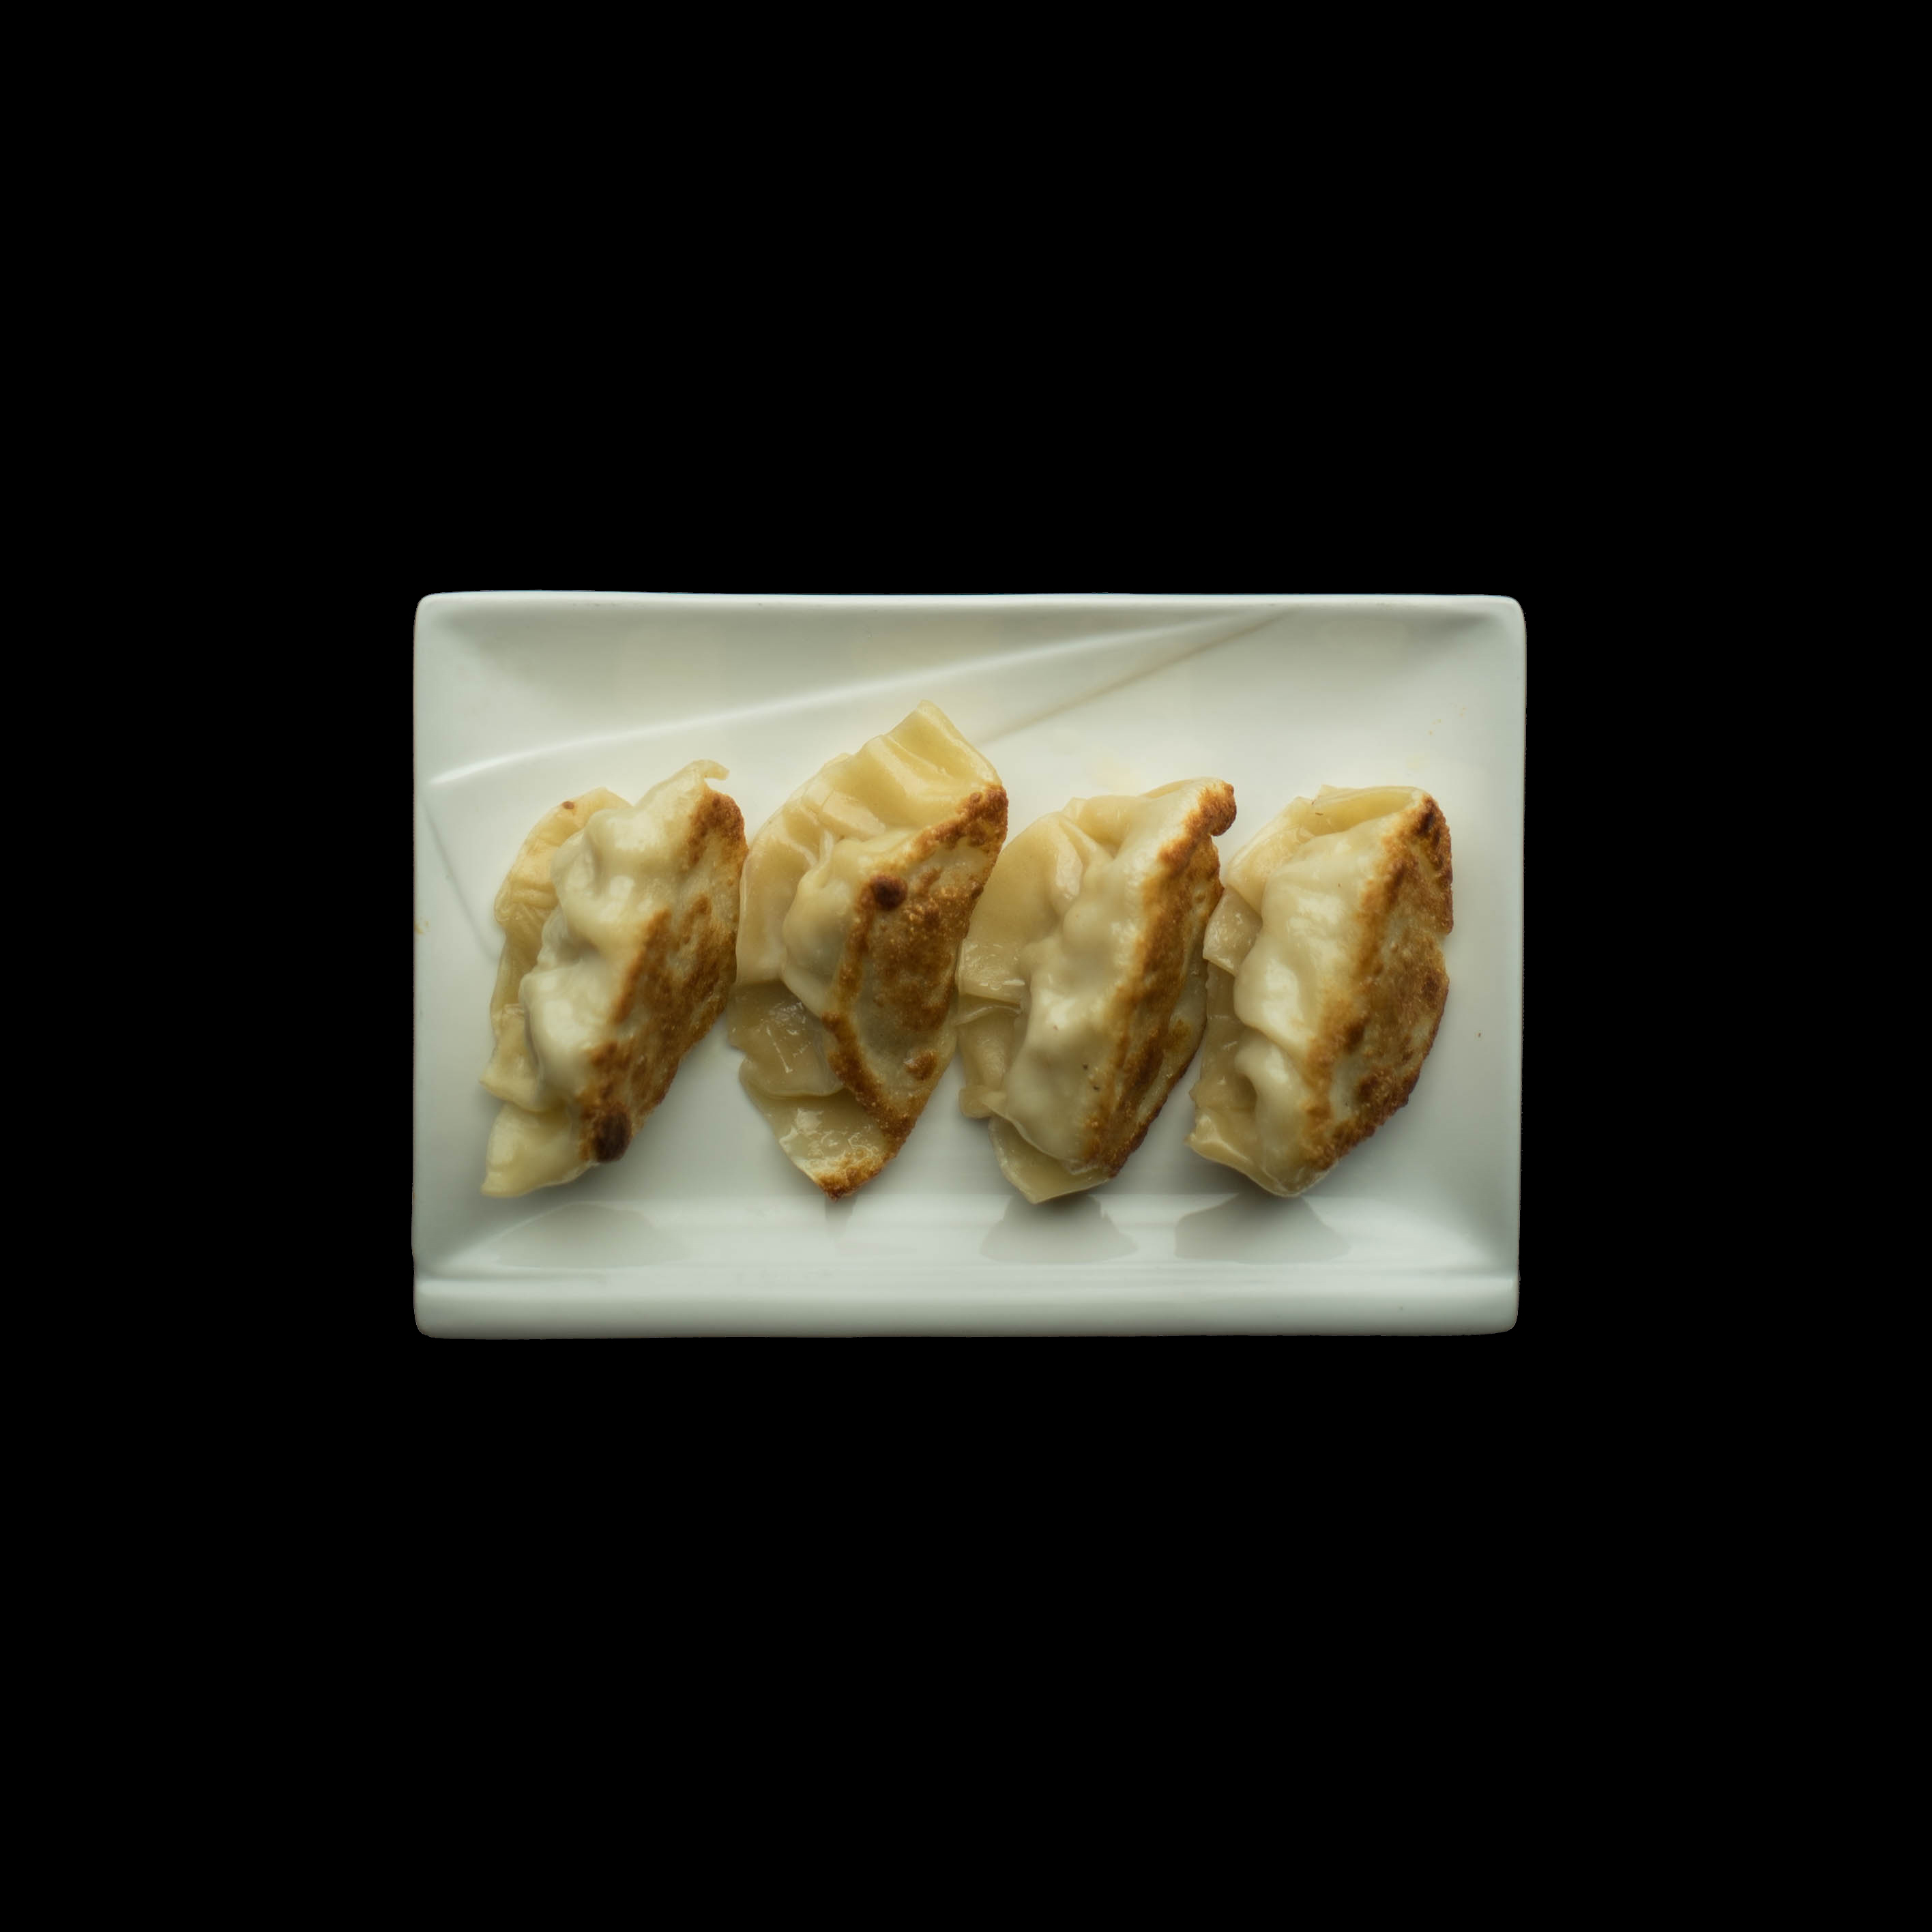 39. 生煎锅贴 Pan Fried Pot Stickers Image